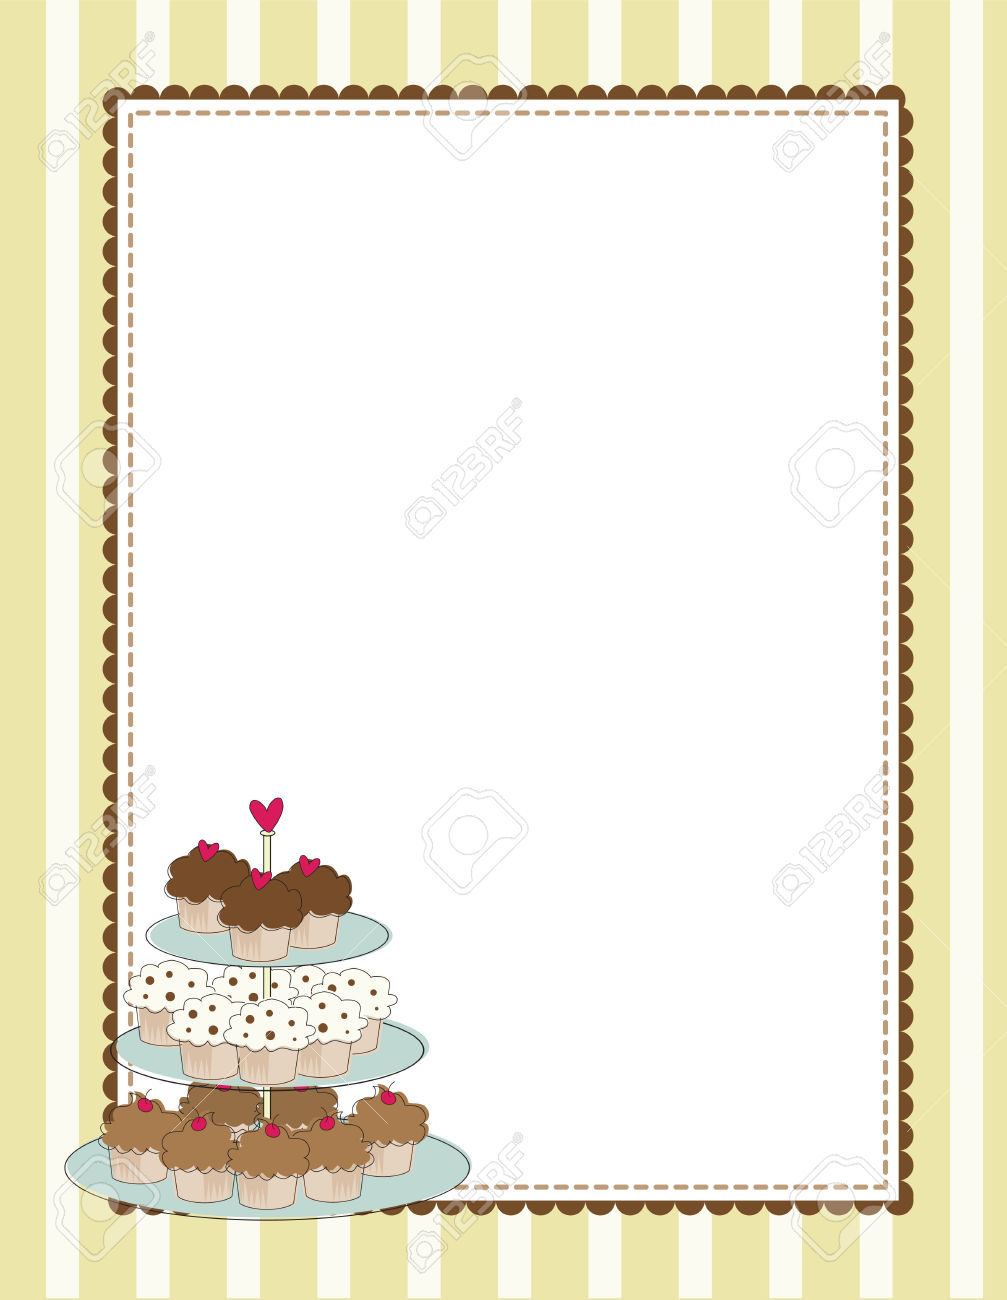 Blueberry Muffin clipart cupcake tray Borders cliparts Muffin Clipart Muffin